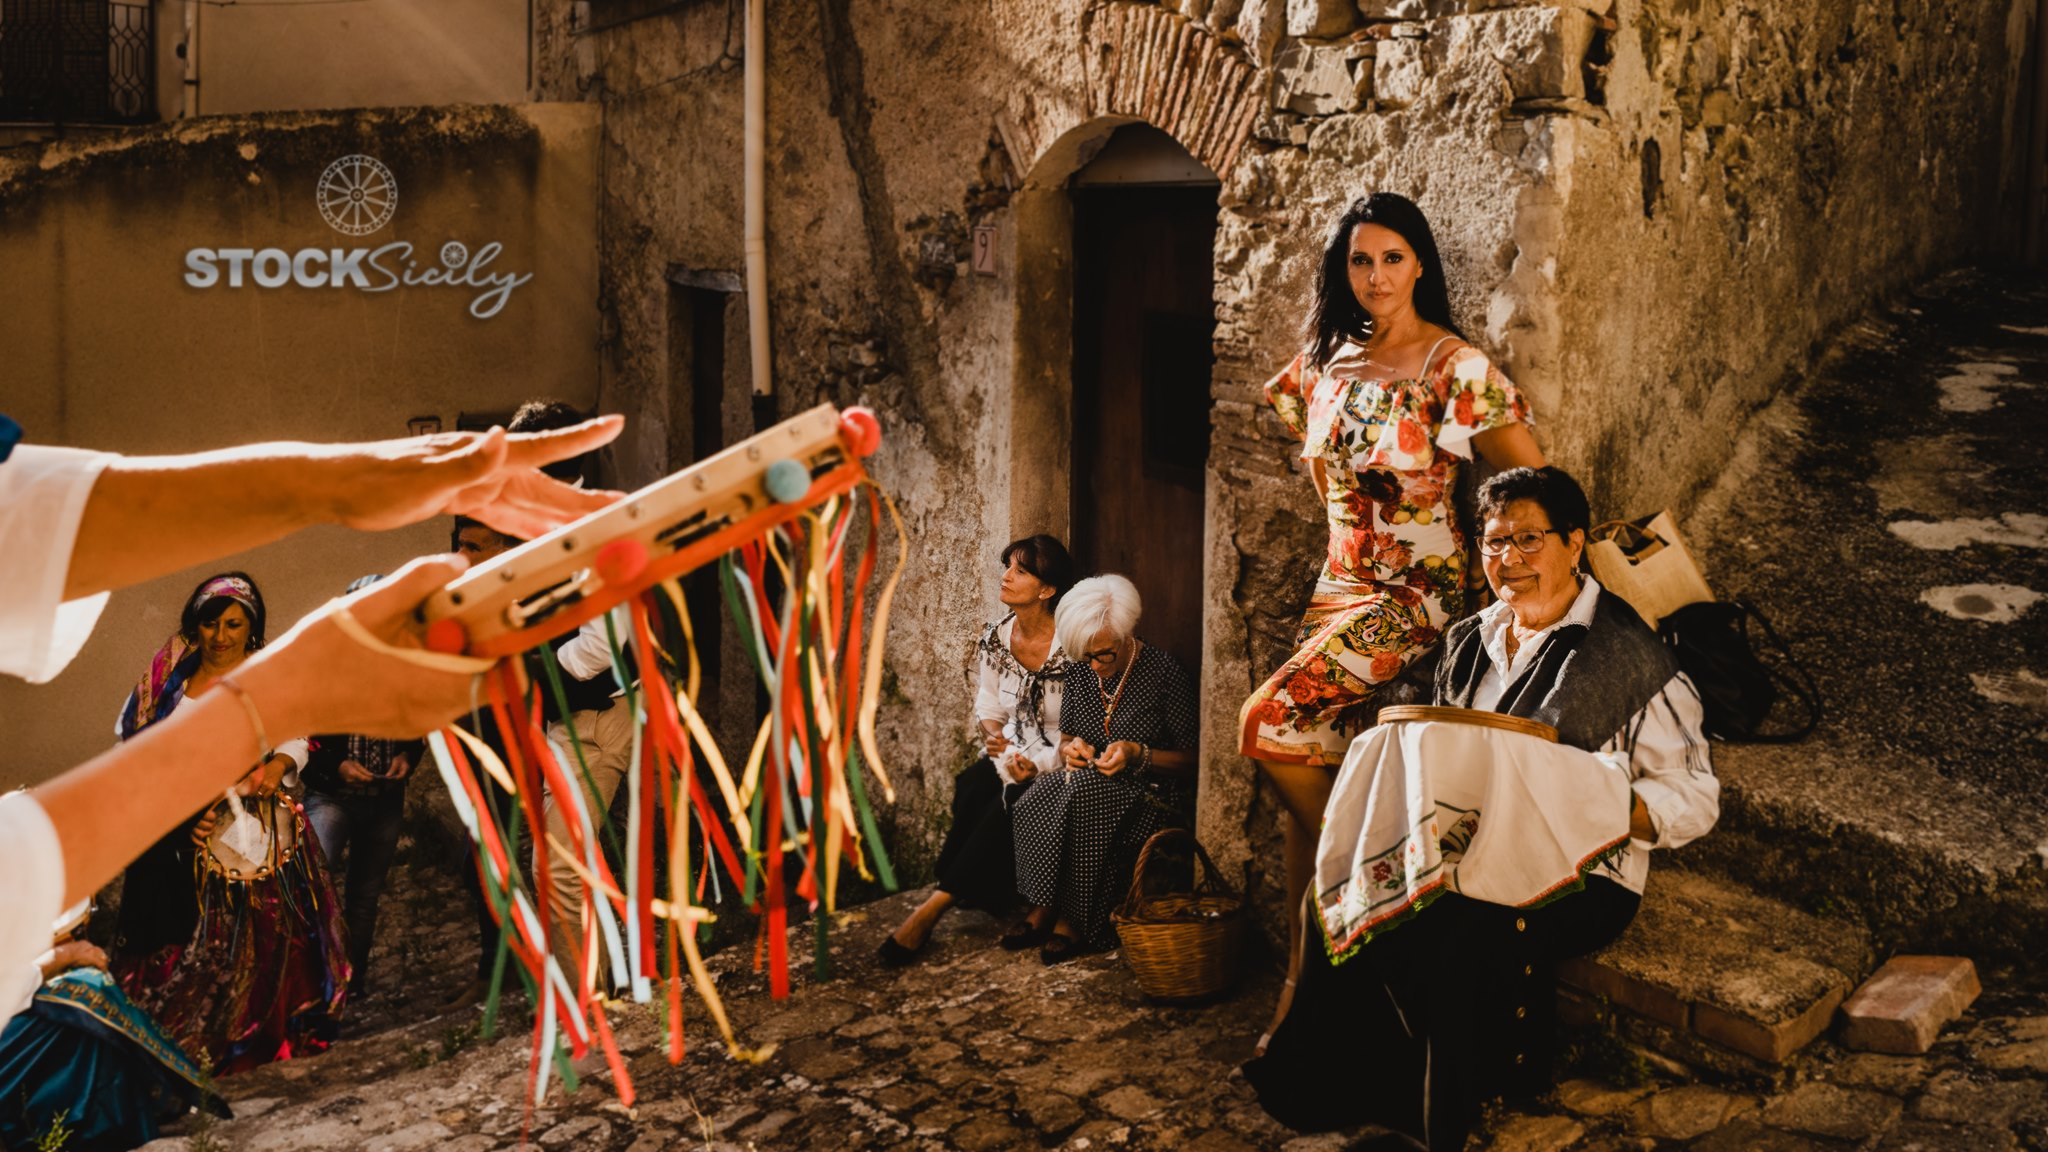 Devotion the film by Dolce and Gabbana at Polizzi Generosa